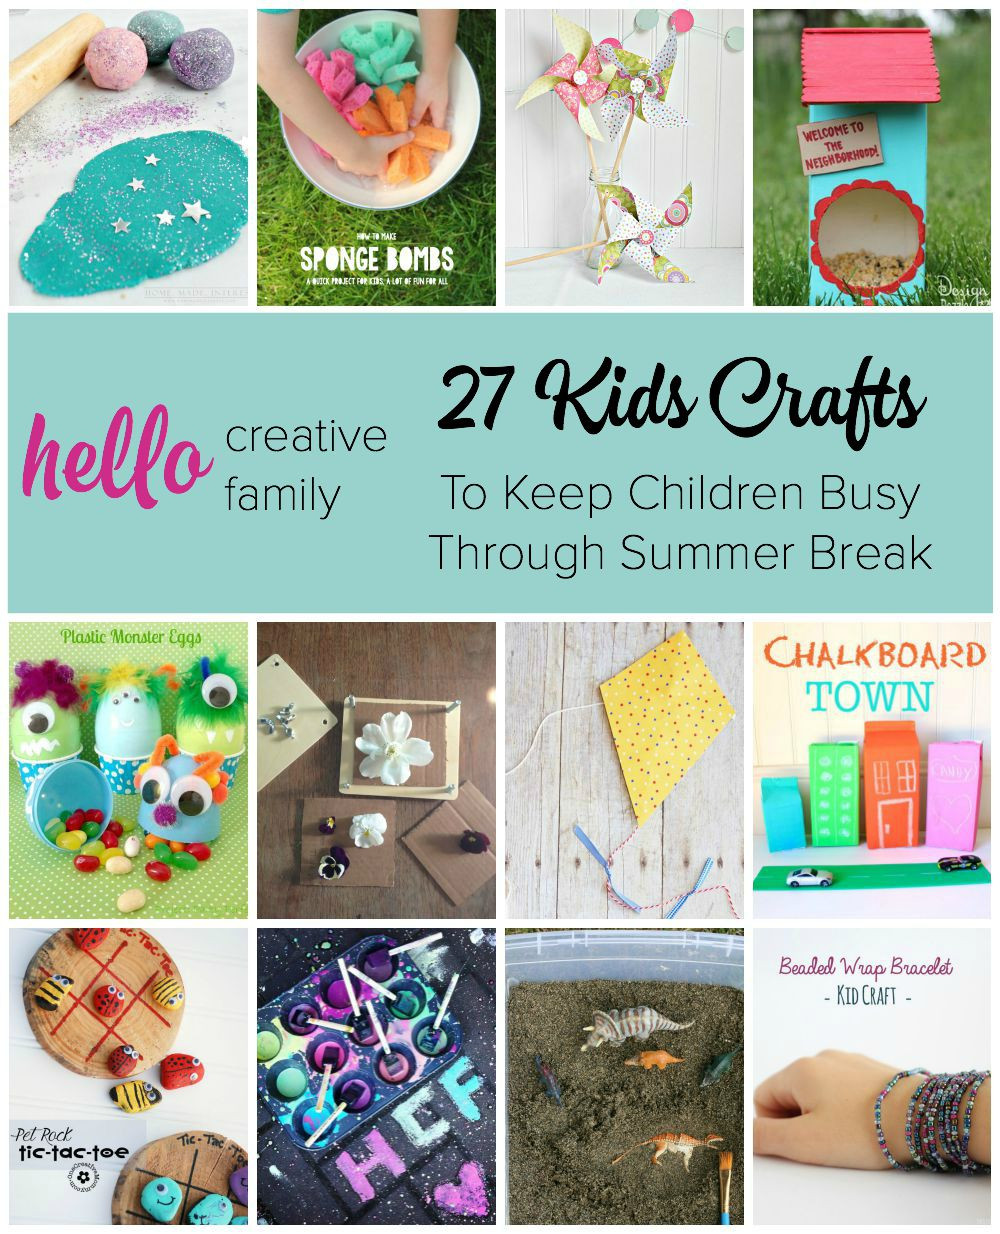 Best ideas about Creative Project For Kids . Save or Pin 27 Kids Crafts to Keep Children Busy Through Summer Break Now.